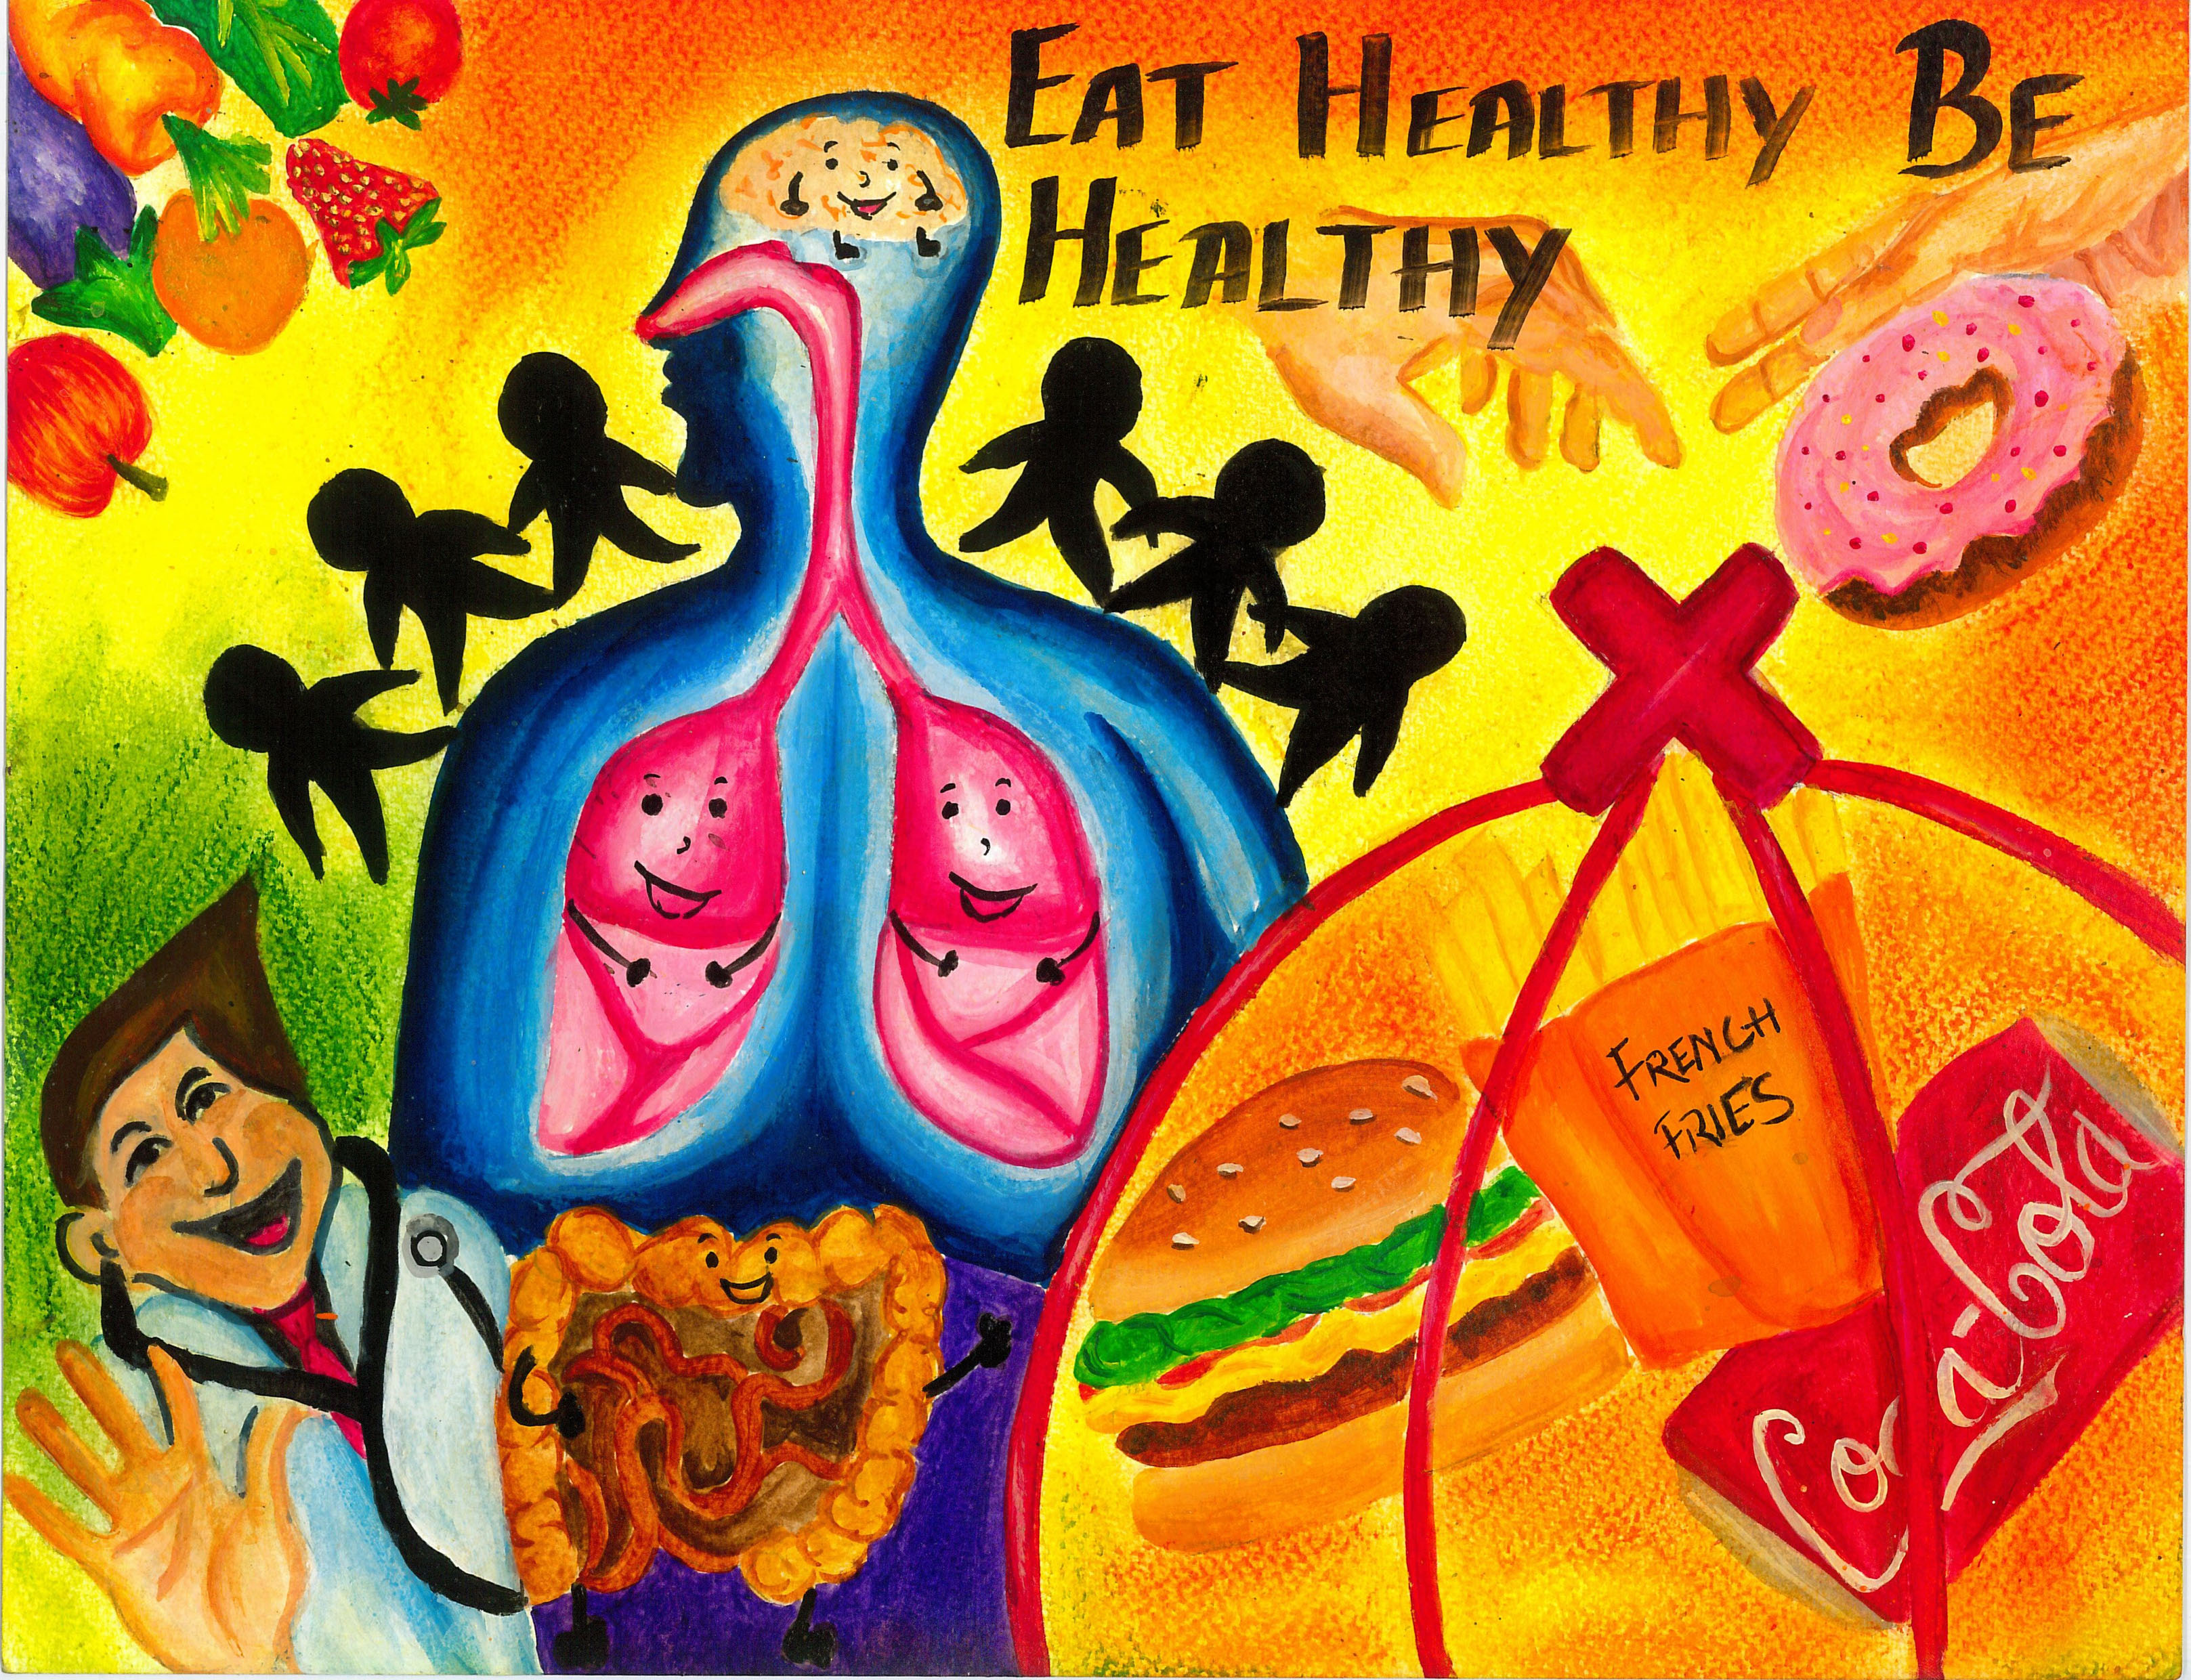 Poster Designing Competition For A Healthy Lifestyle